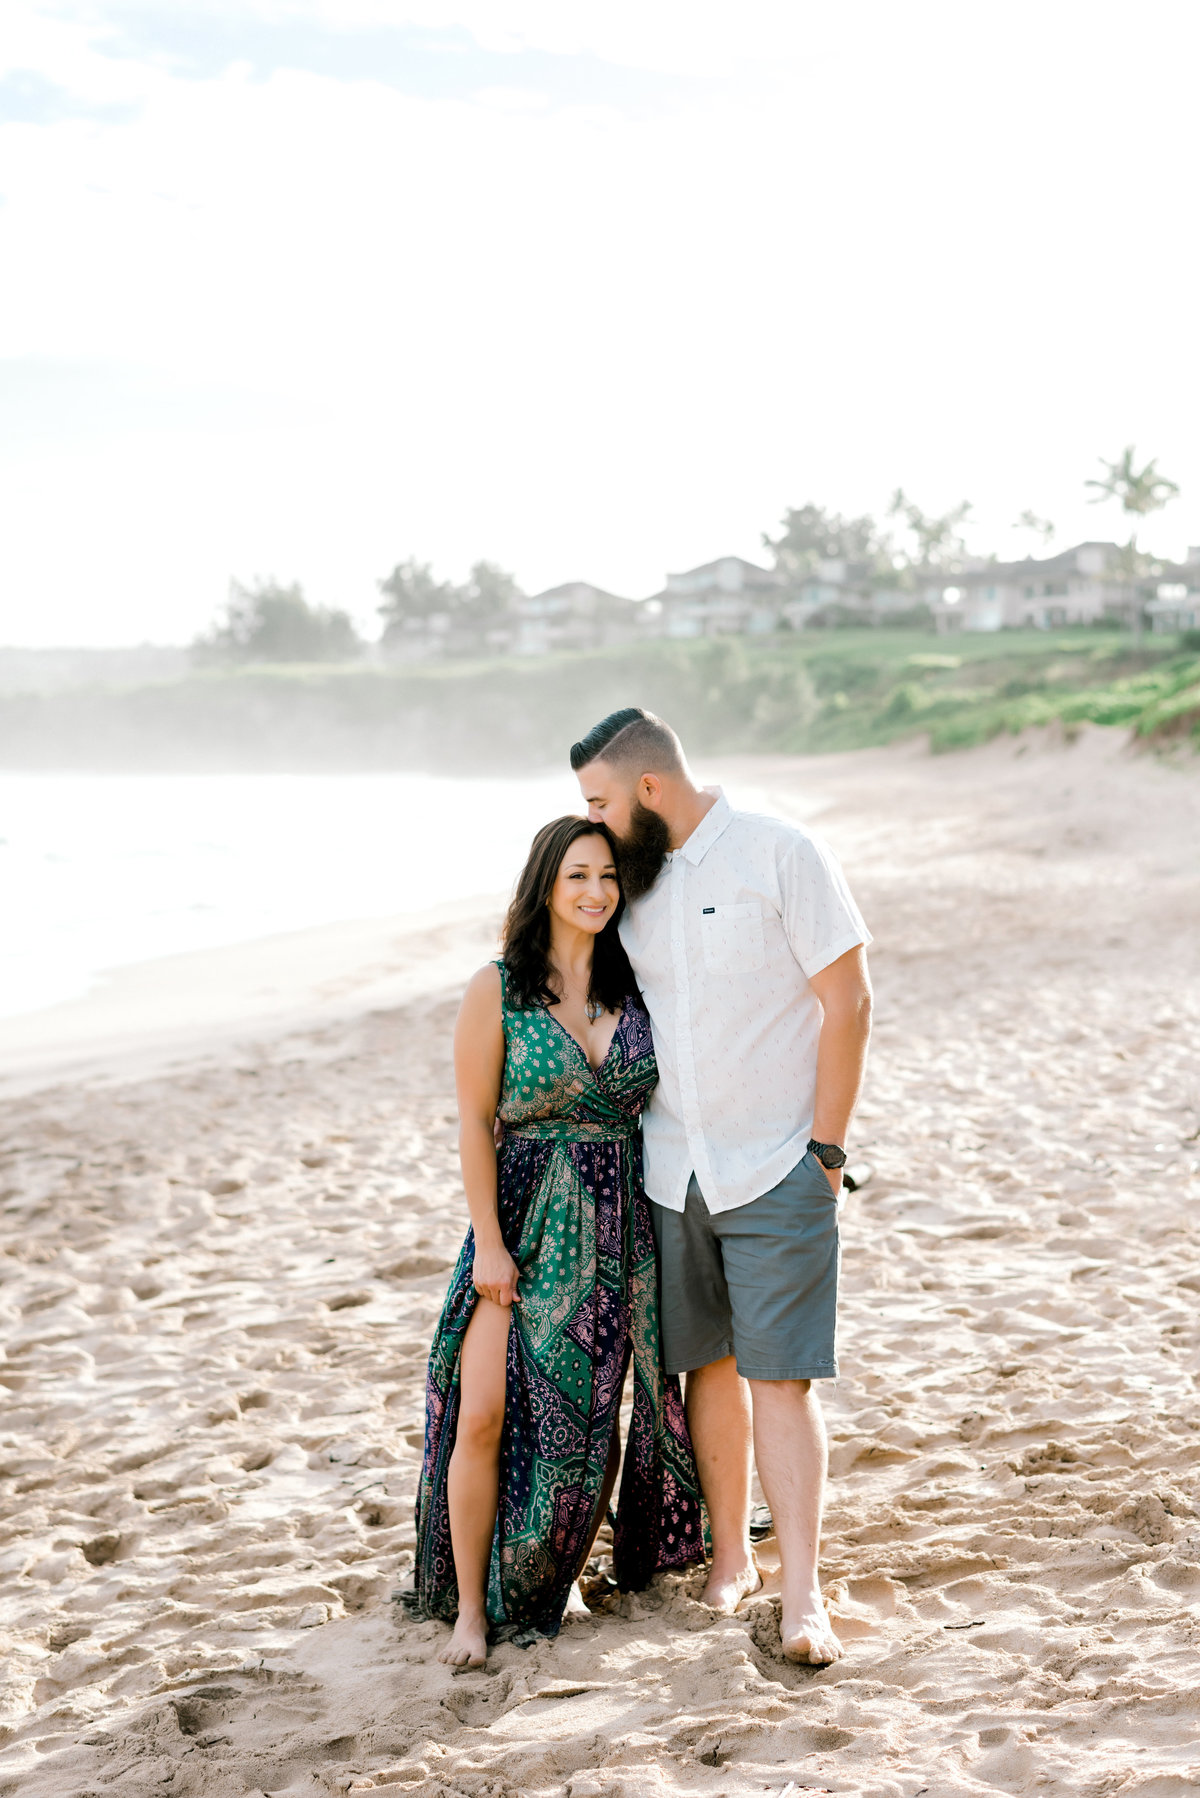 Jenny Vargas Photography Wedding Engagement Elopement Maui Island Hawaii Tropical Destination Photographer18